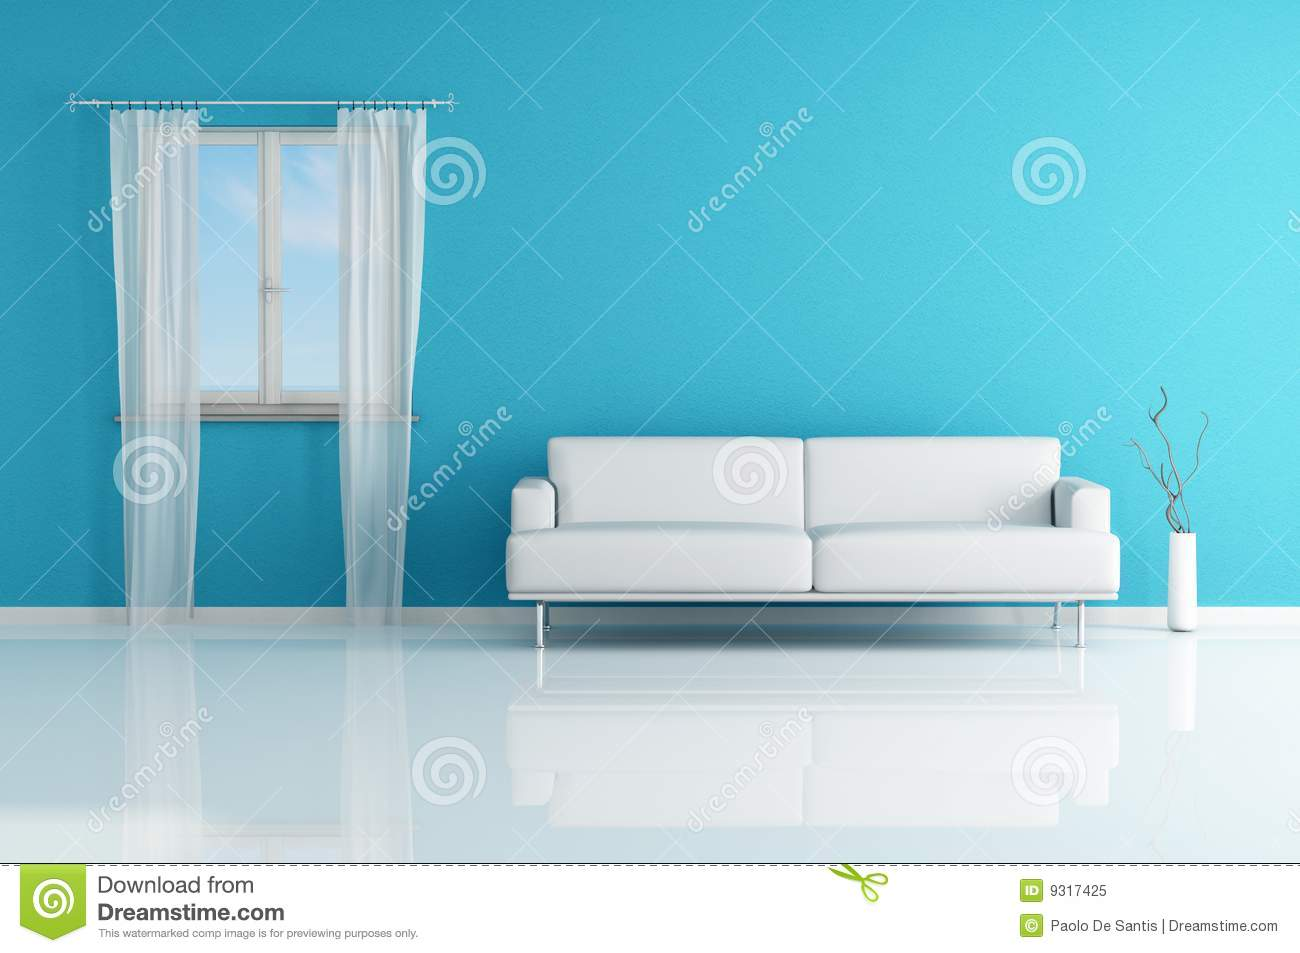 White Sofa In A Blue Room Royalty Free Stock Photo Image